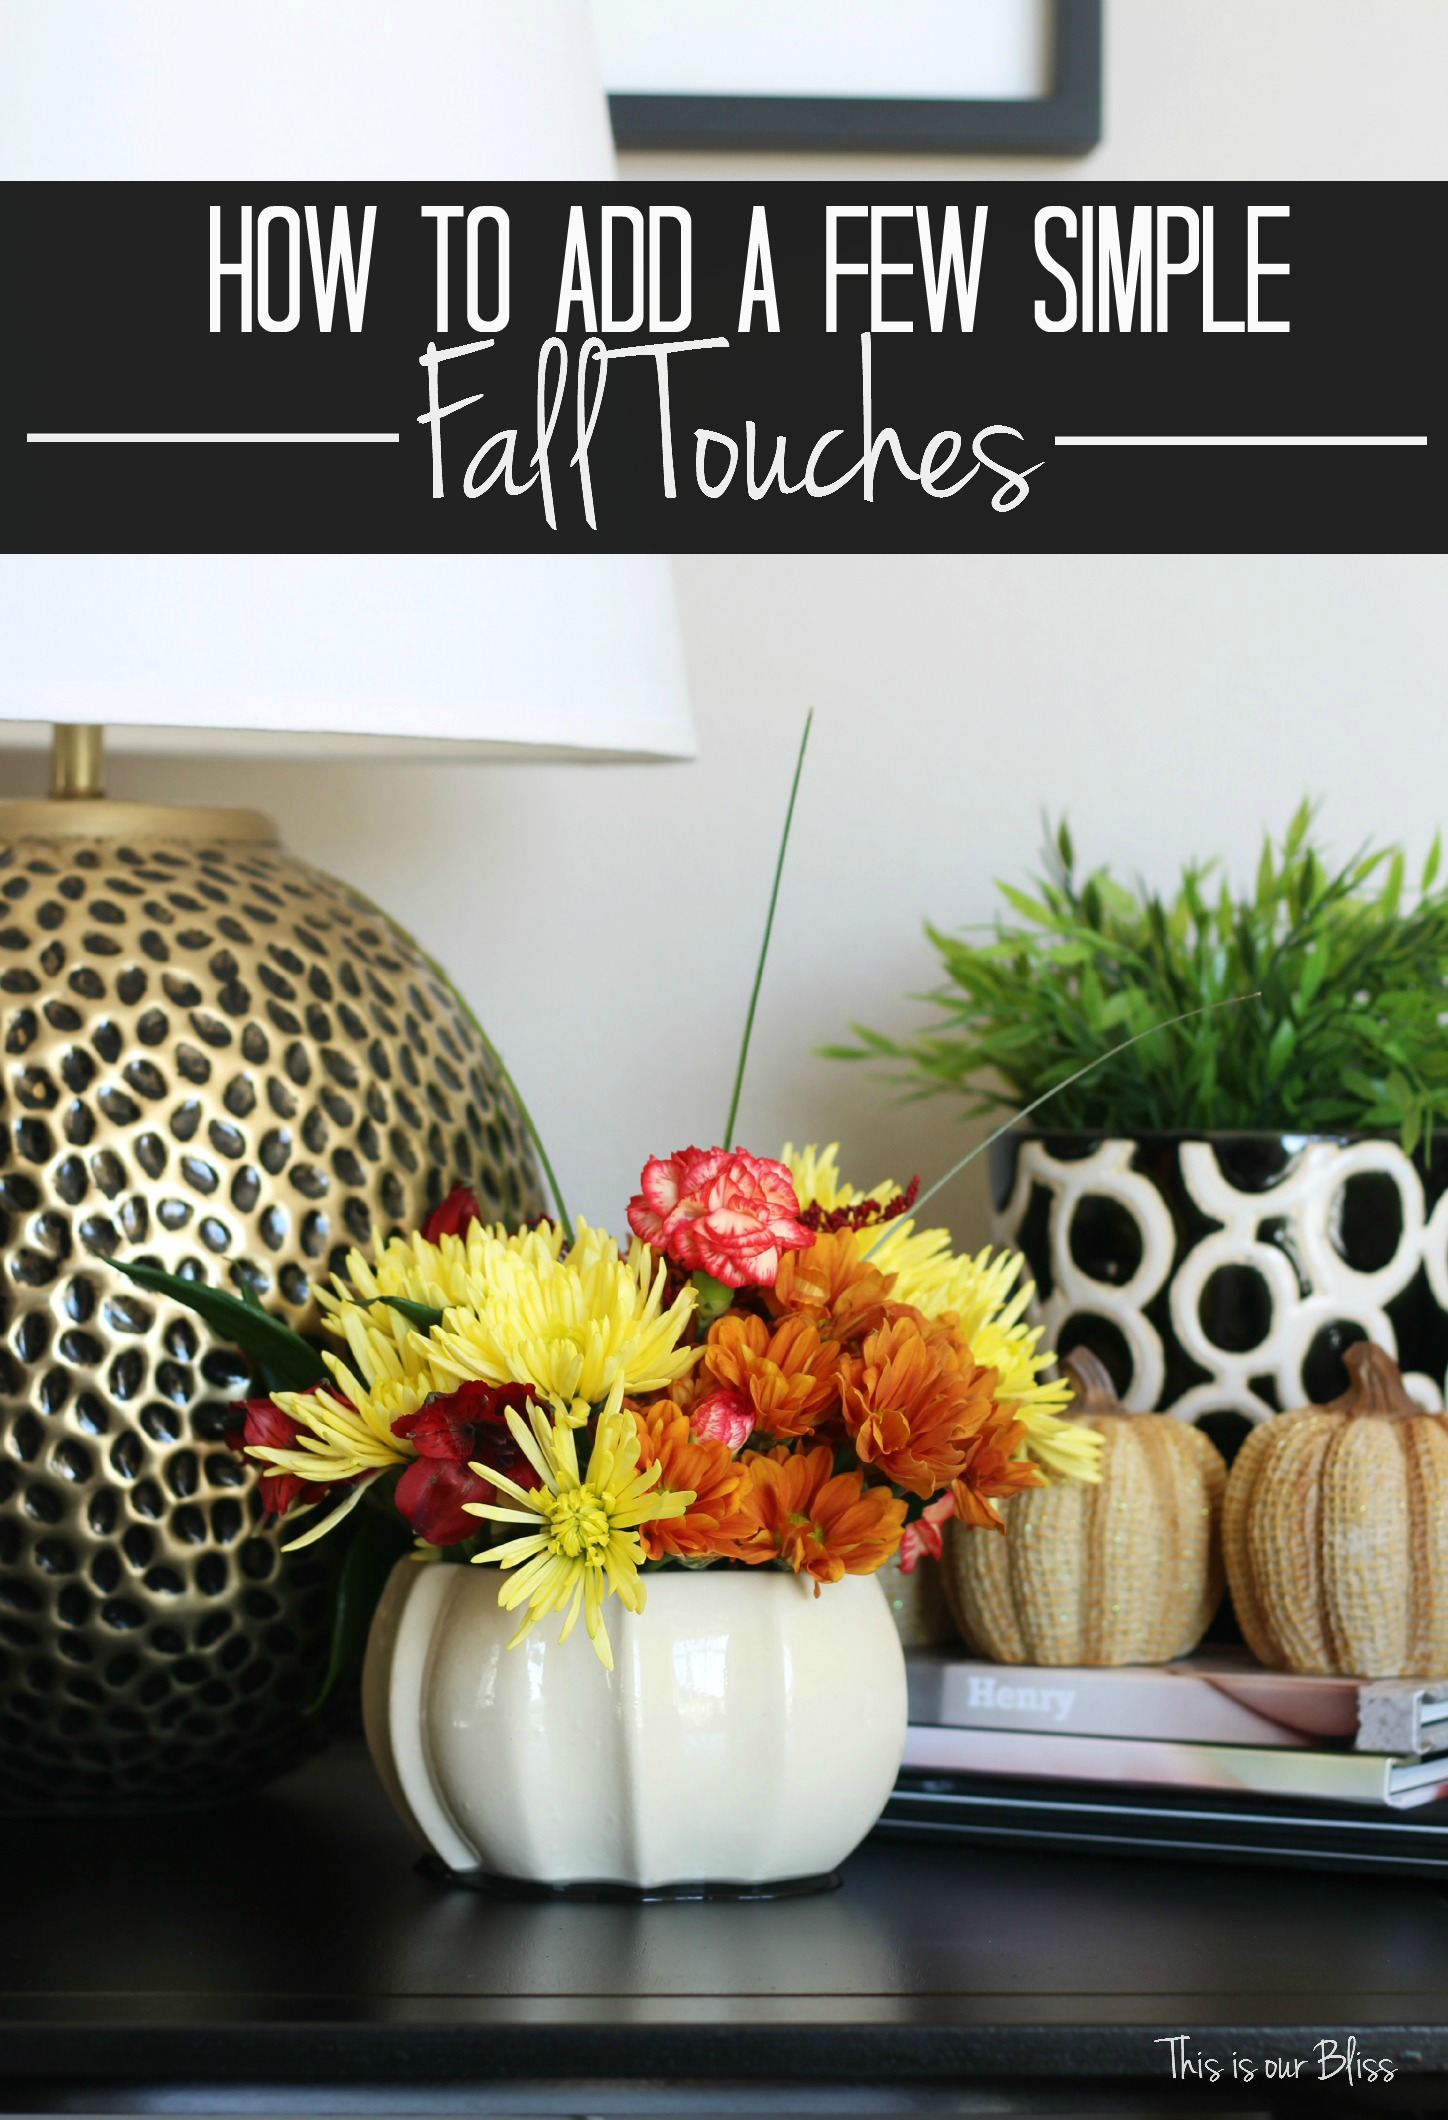 how to add a few simple fall touches - easy fall vignette - simply fall decor - fall flowers - end table styling - this is our Bliss